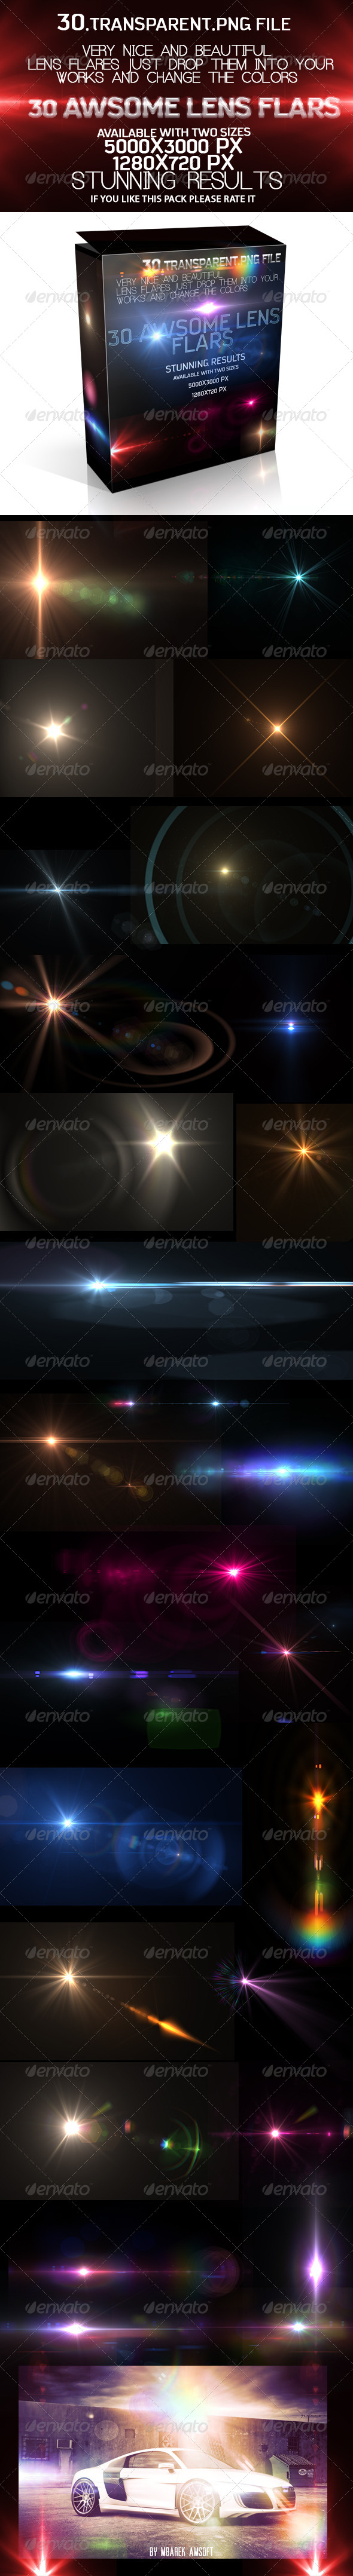 GraphicRiver 30 Awsome Lens Flare 5220739